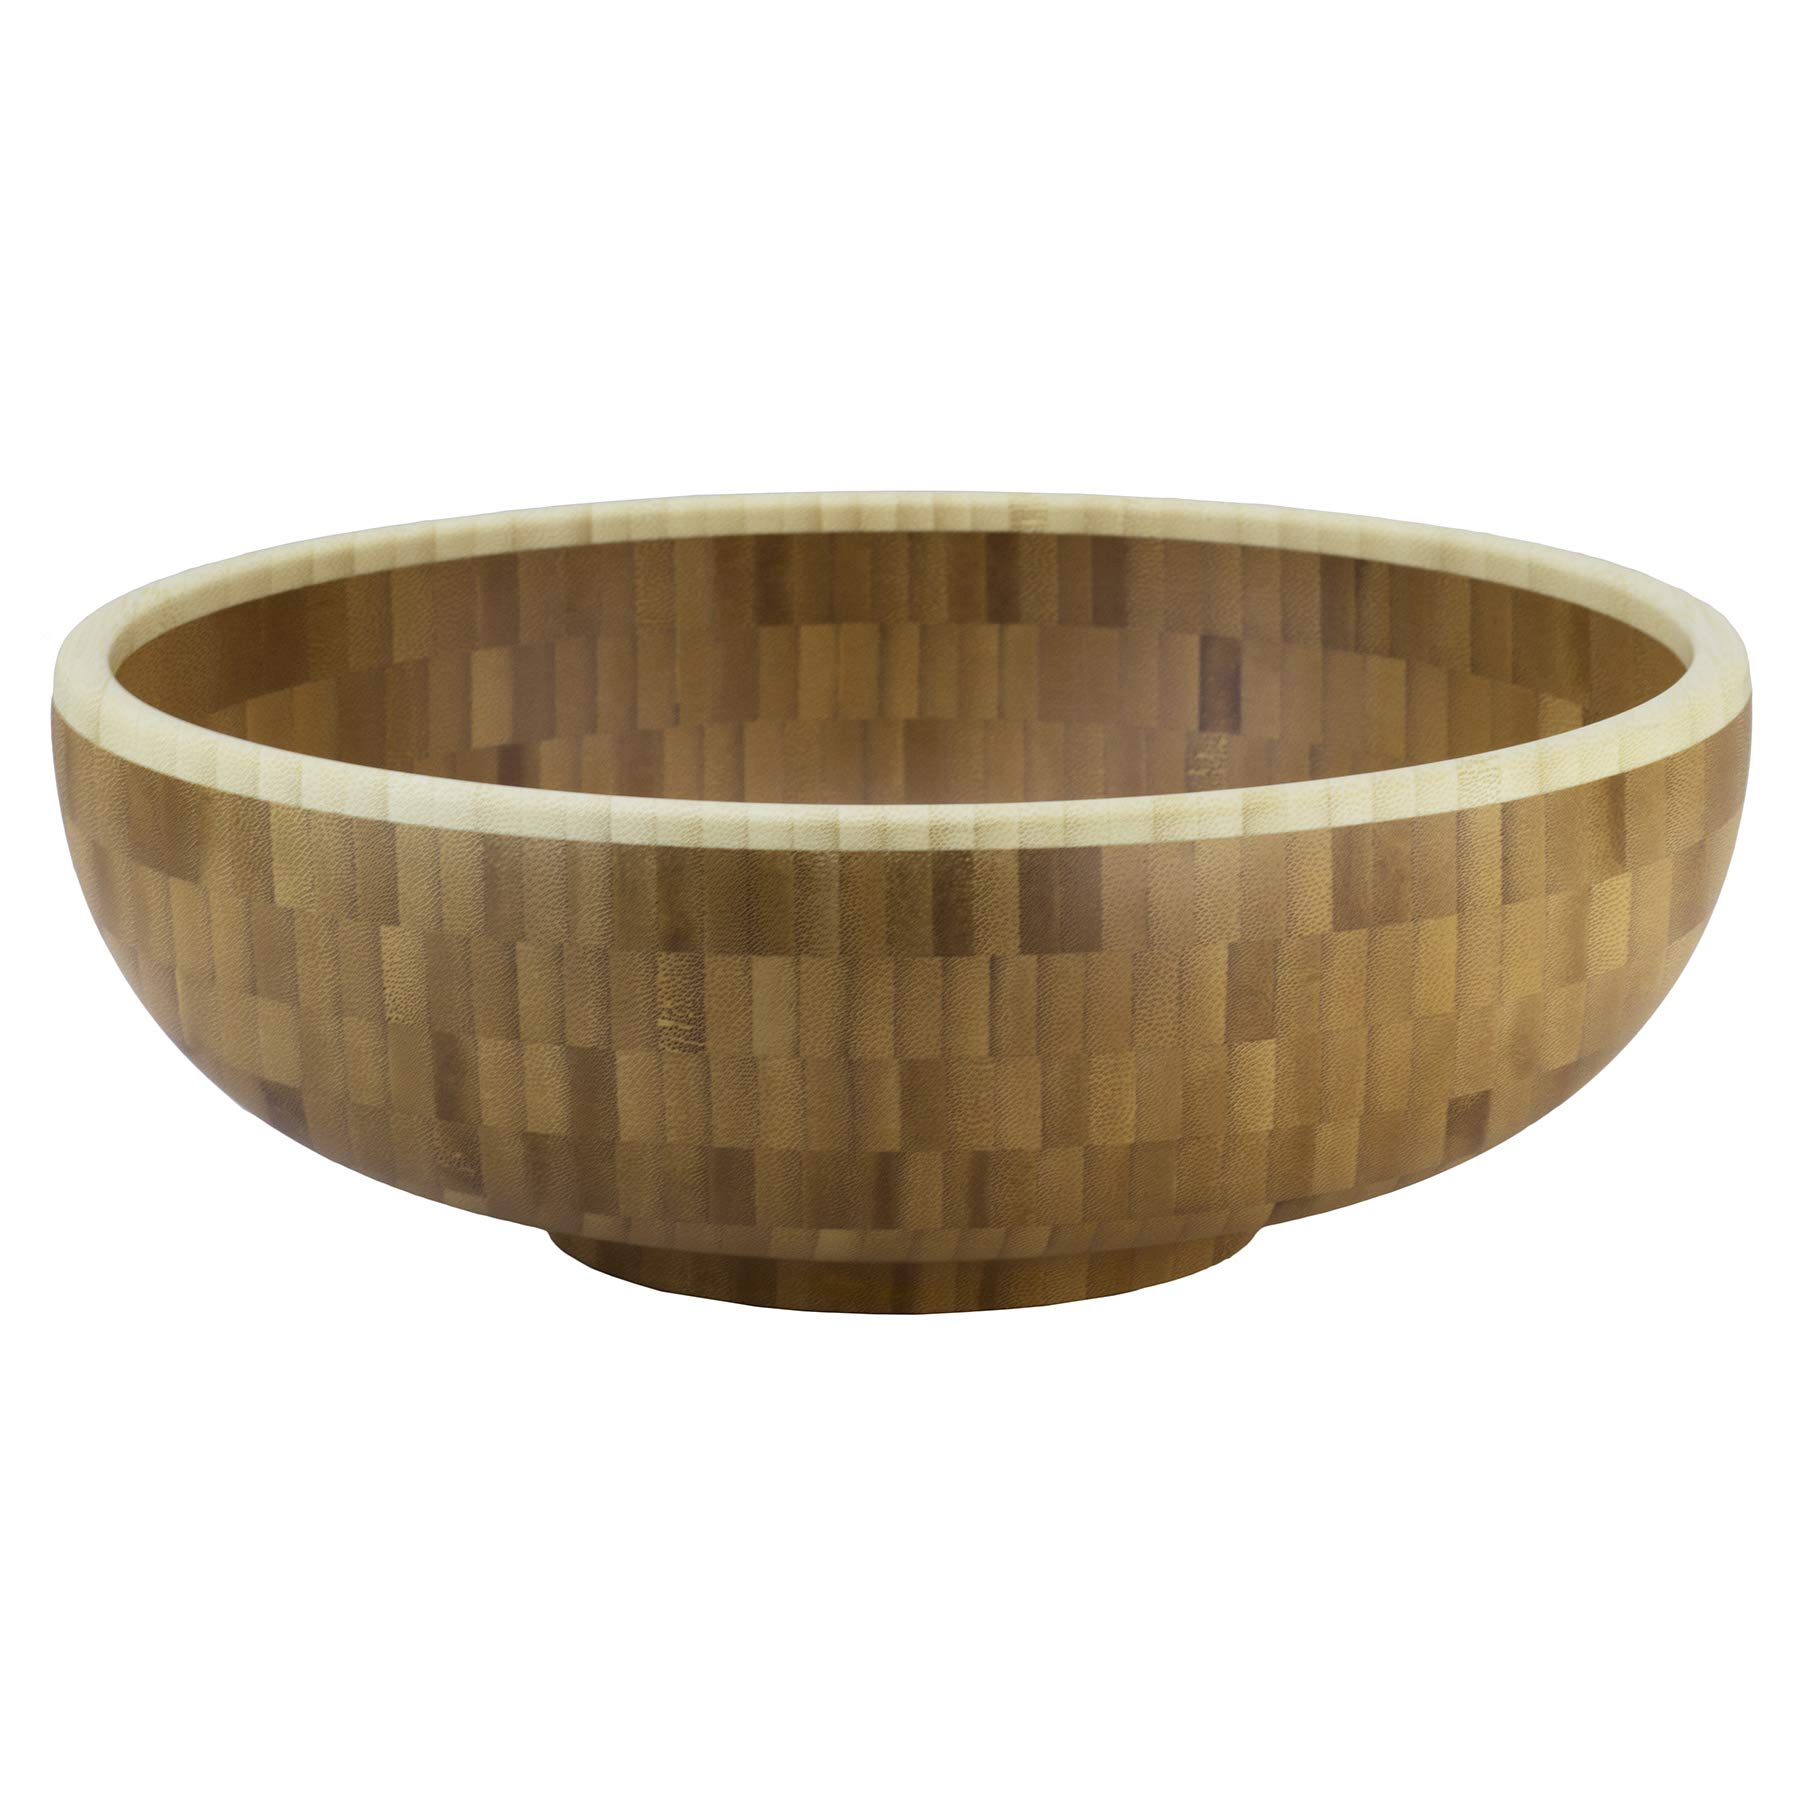 """Totally Bamboo Classic Large Bamboo Serving Bowl, 12"""" x 12"""" x 4-1/2"""""""